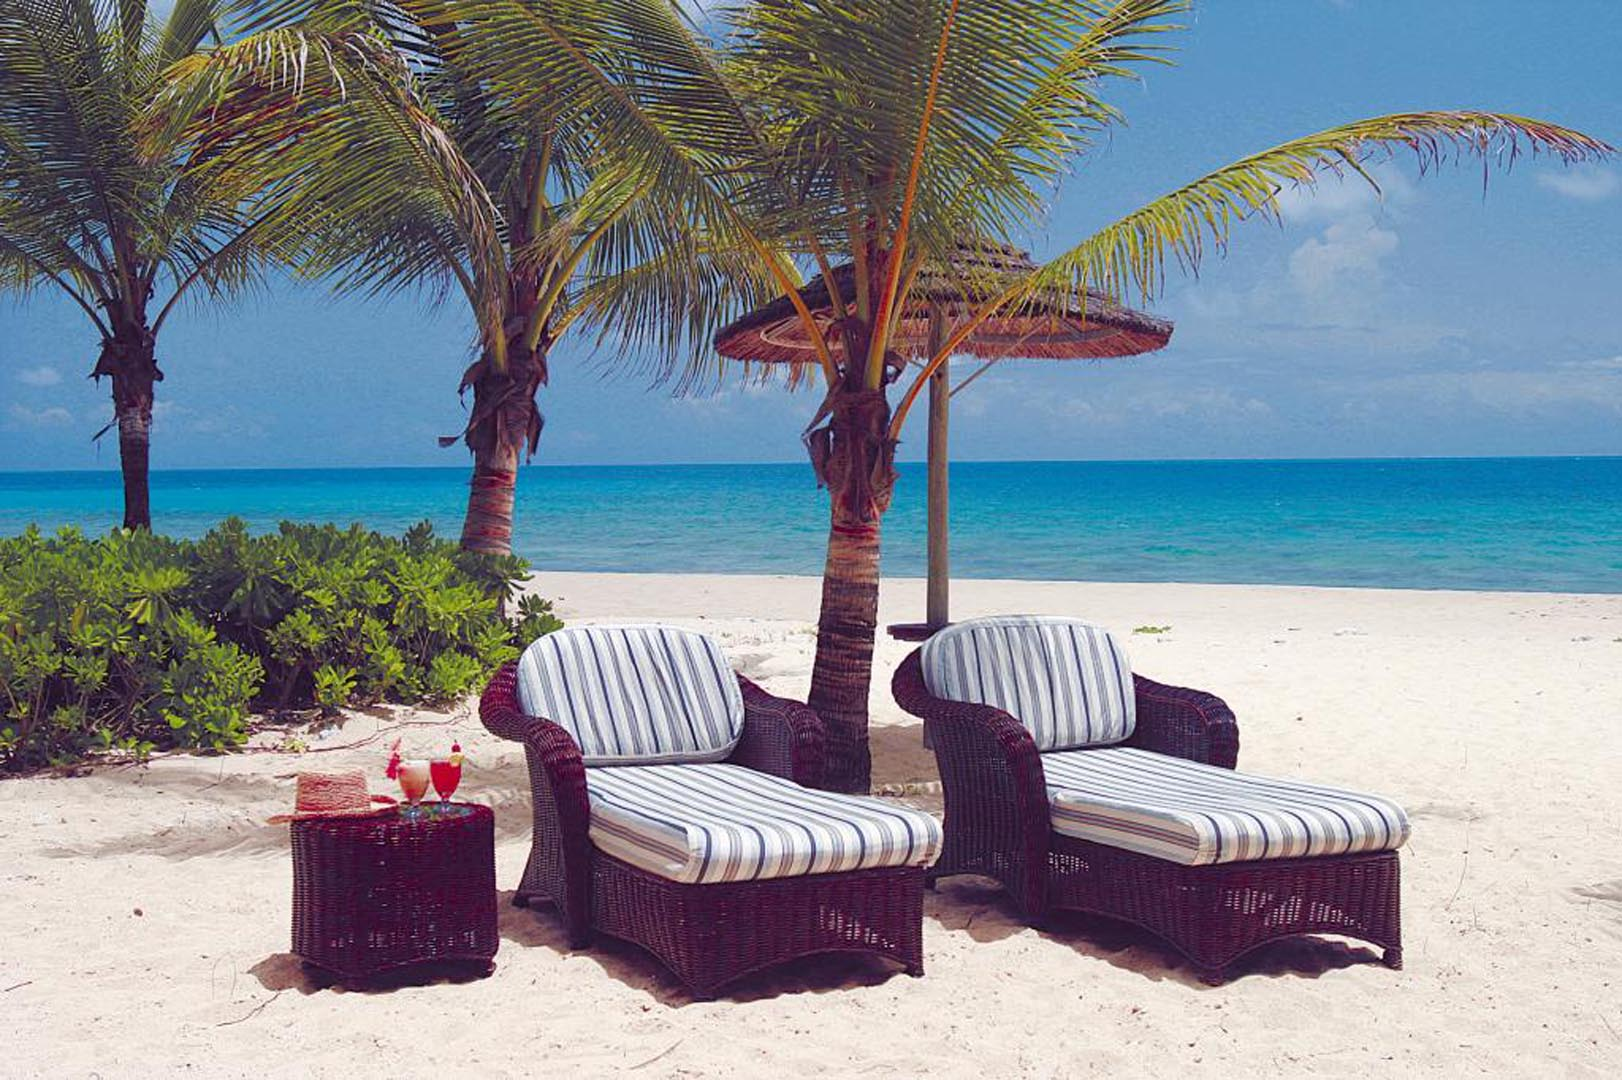 galley bay resort and spa in hotels, caribbean, antigua, galley